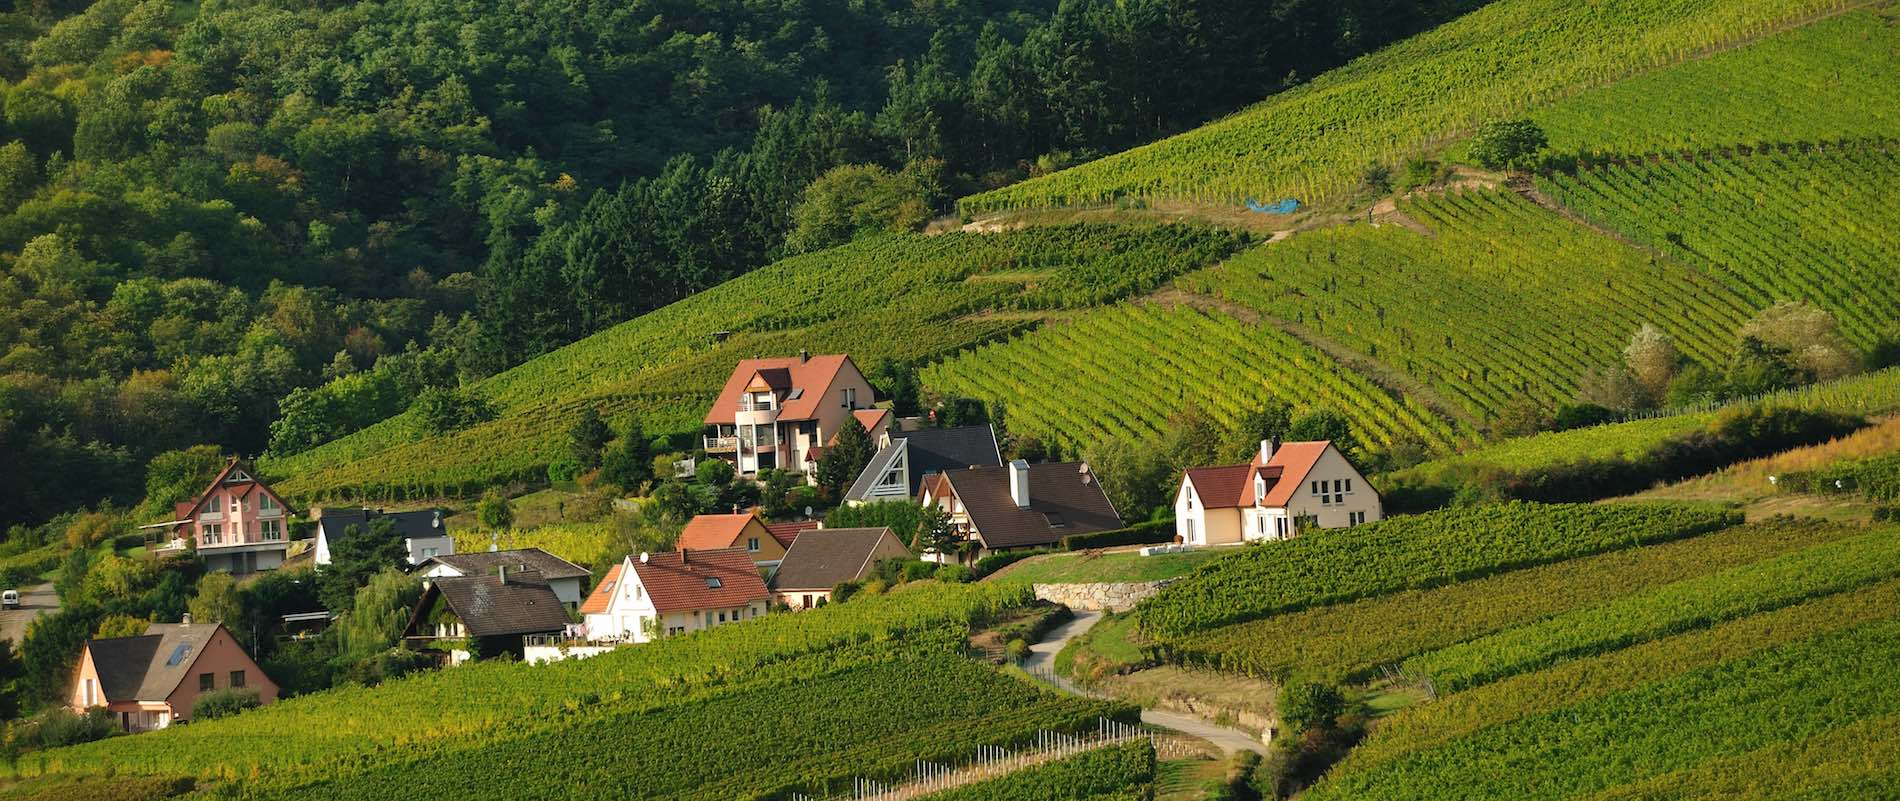 The Wine Villages of the Alsace -